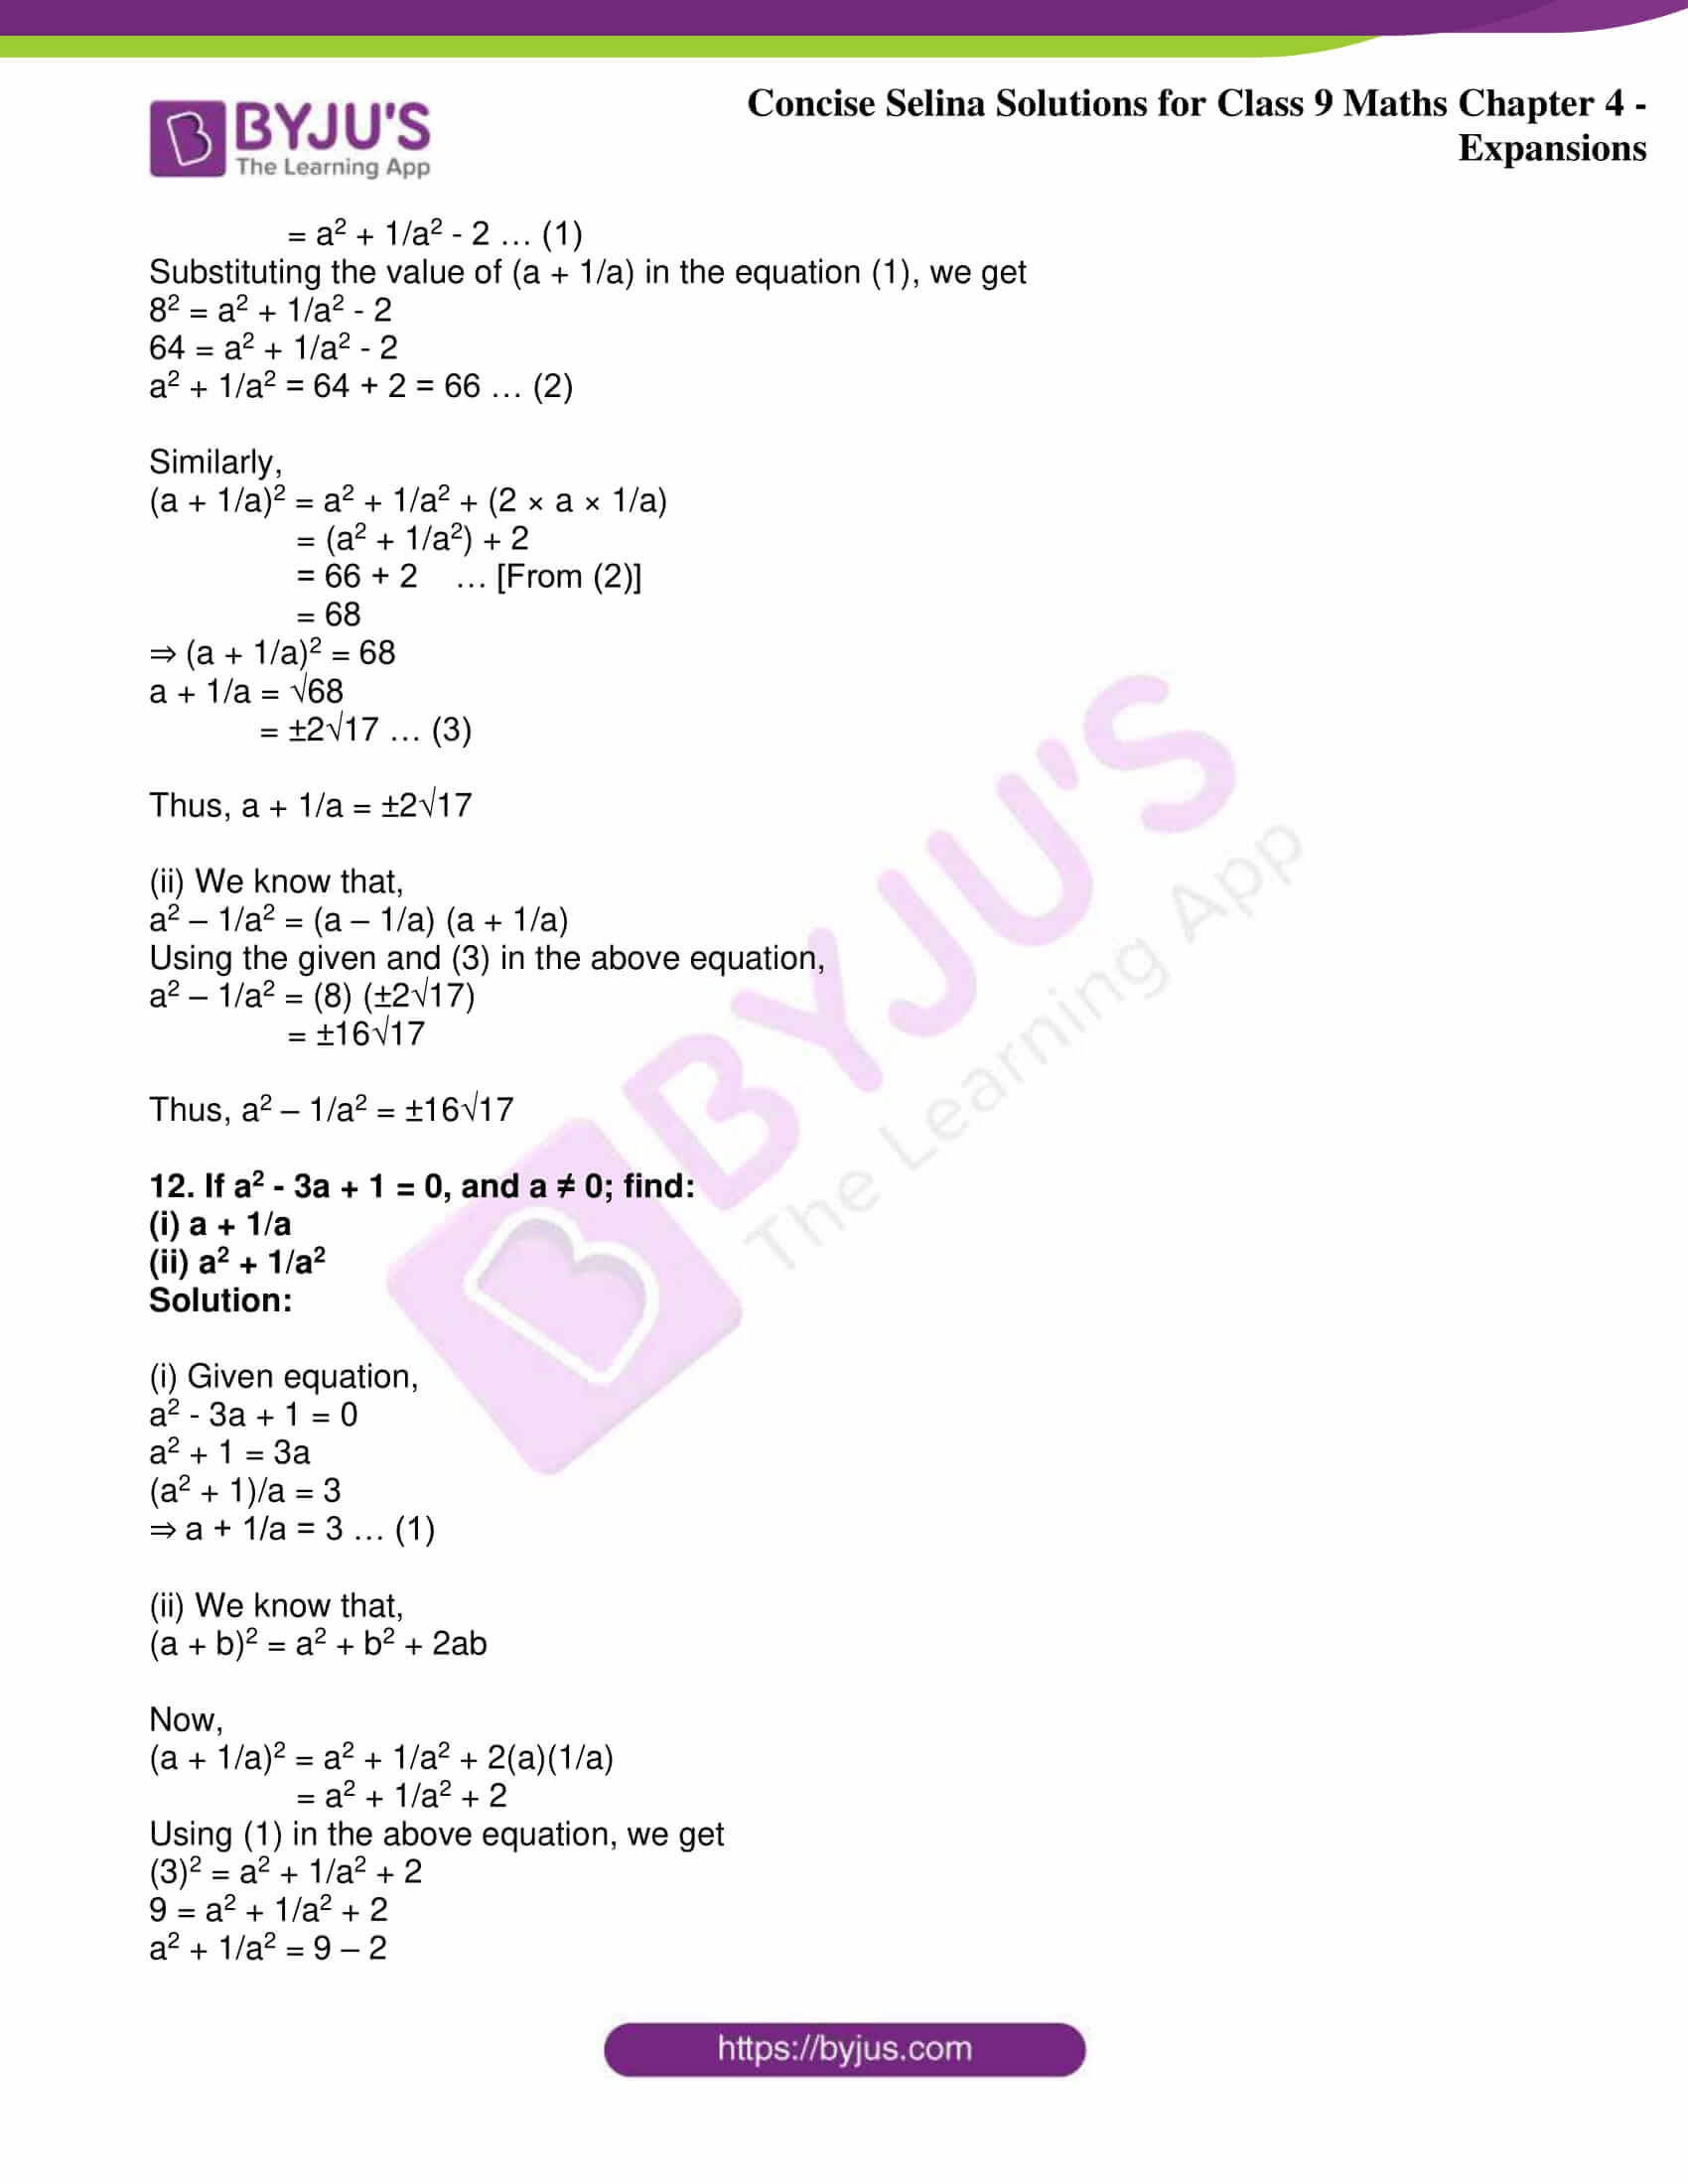 icse class 9 maths may10 selina solutions chapter 4 expansions 07